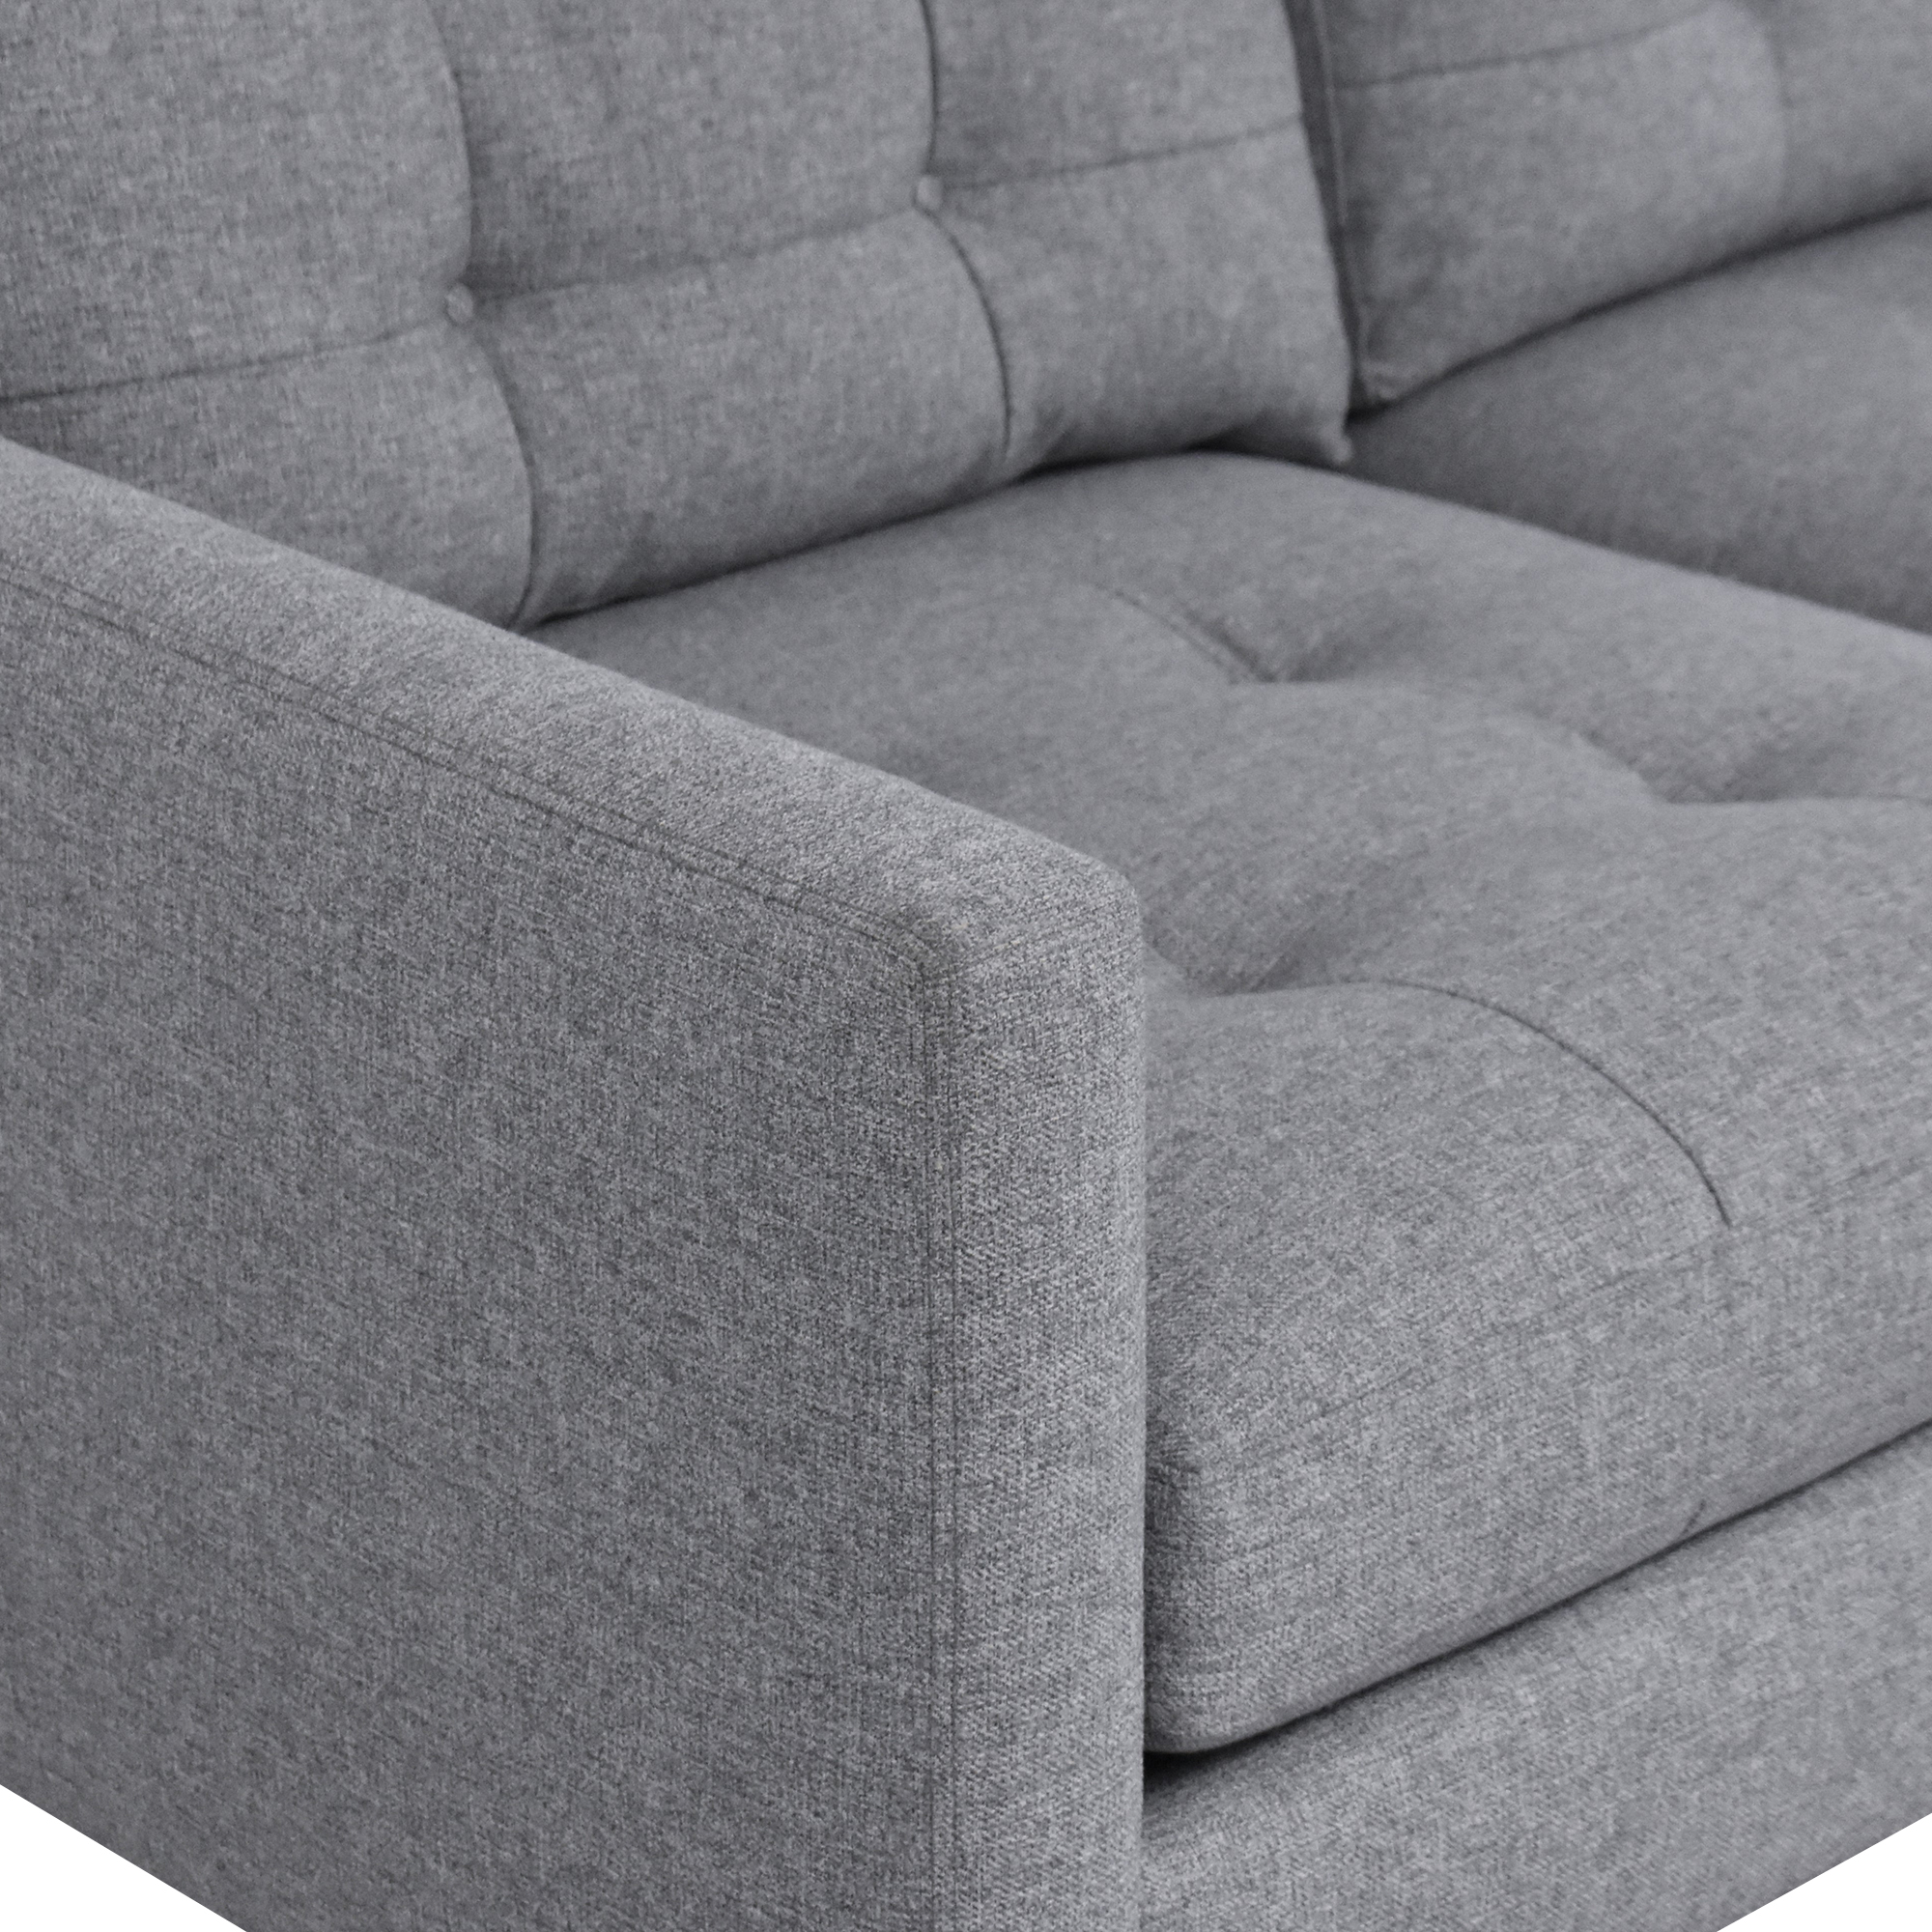 Crate & Barrel Crate & Barrel Petrie Two Piece Chaise Midcentury Sectional Sofa Sofas